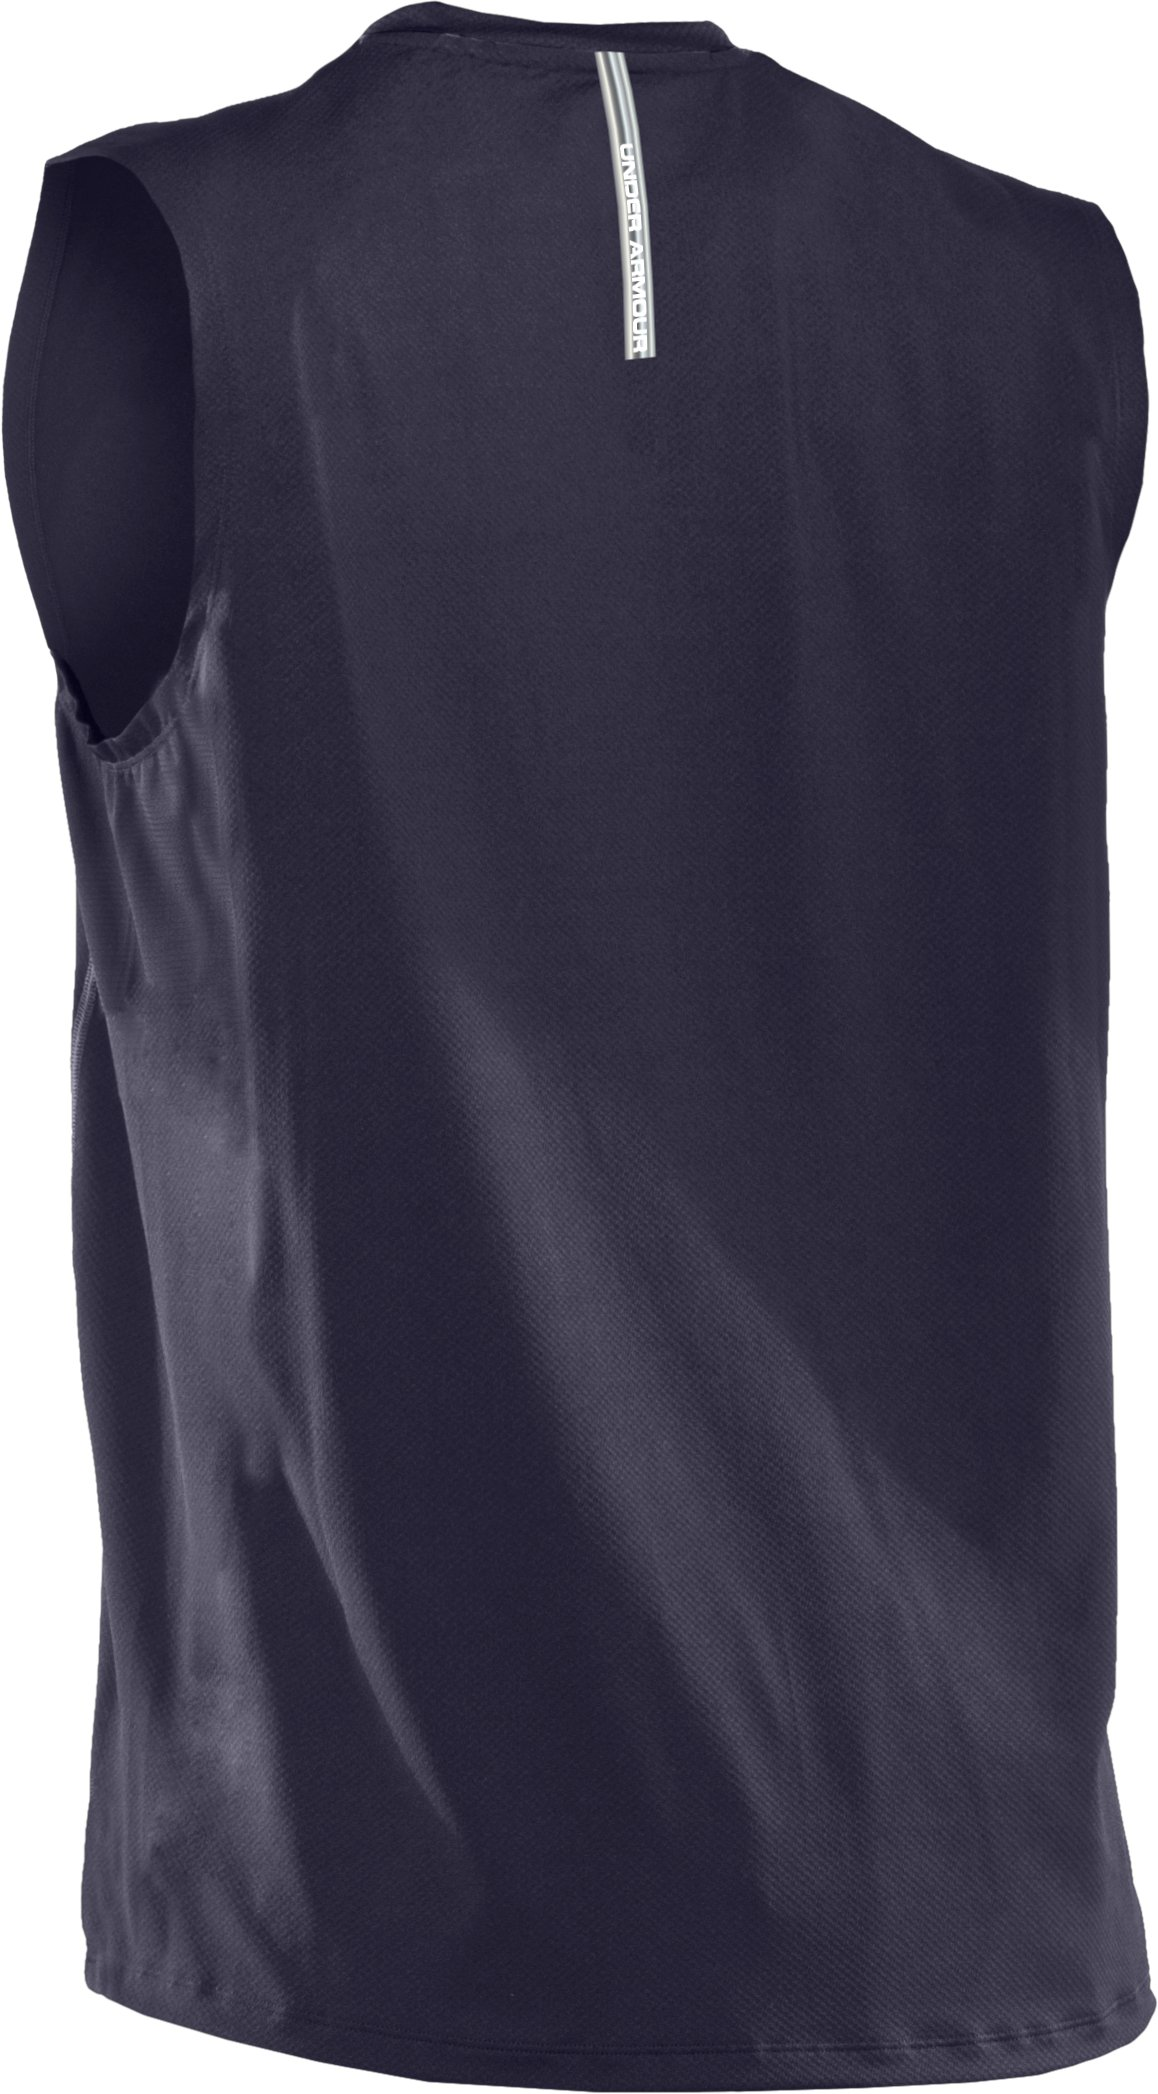 Men's coldblack® Sleeveless T-Shirt, Midnight Navy